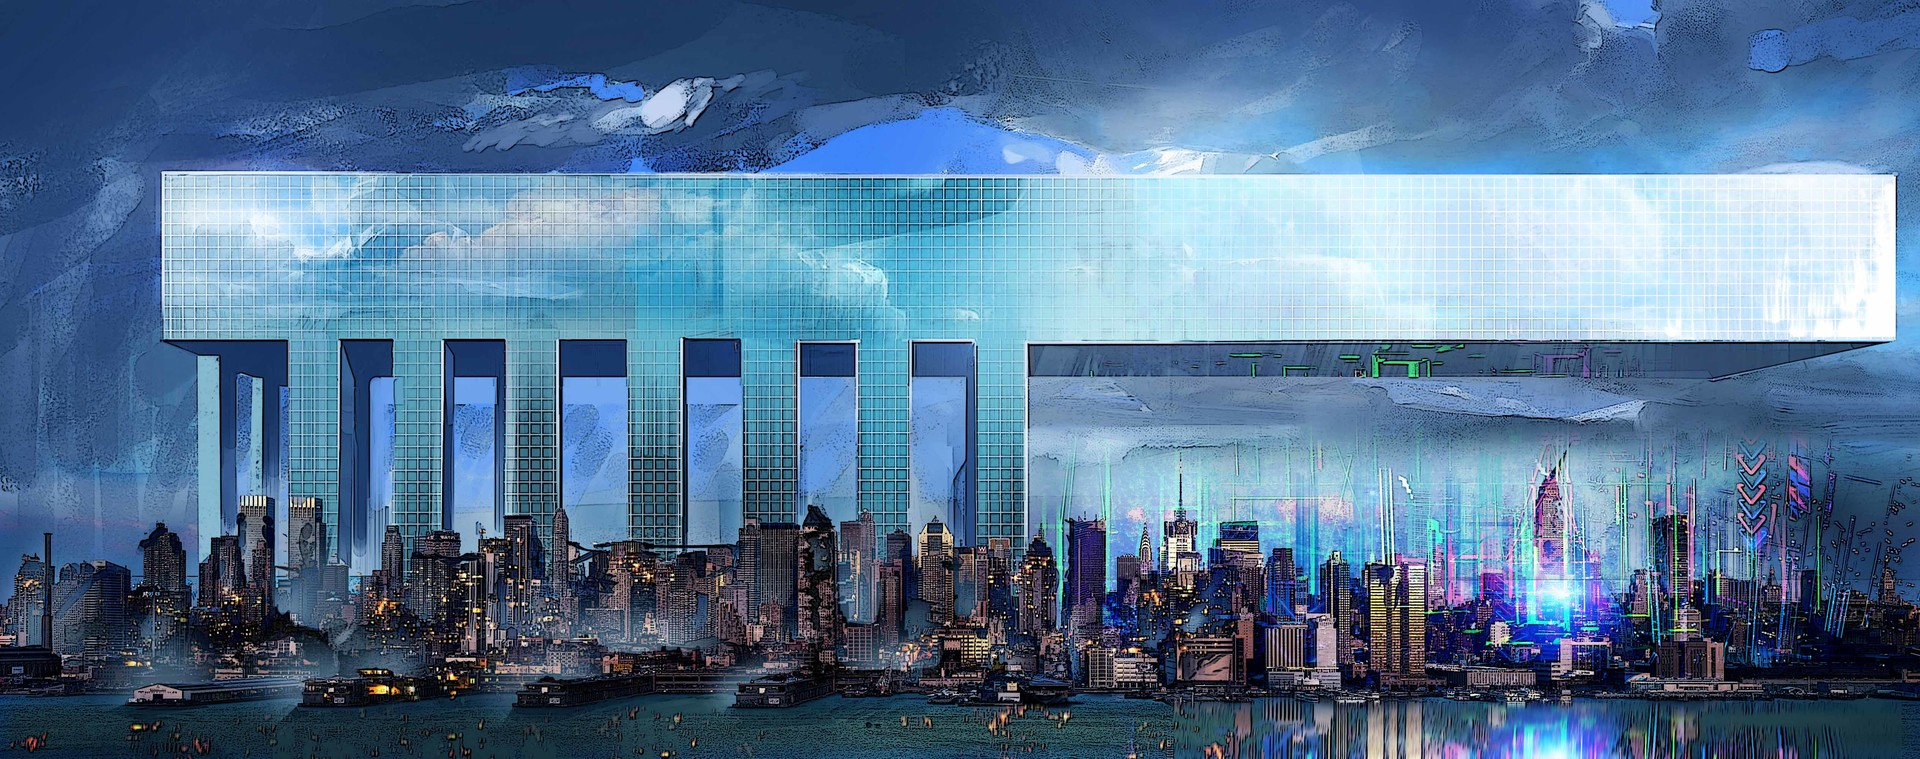 Samuel silverman new york skyline concept